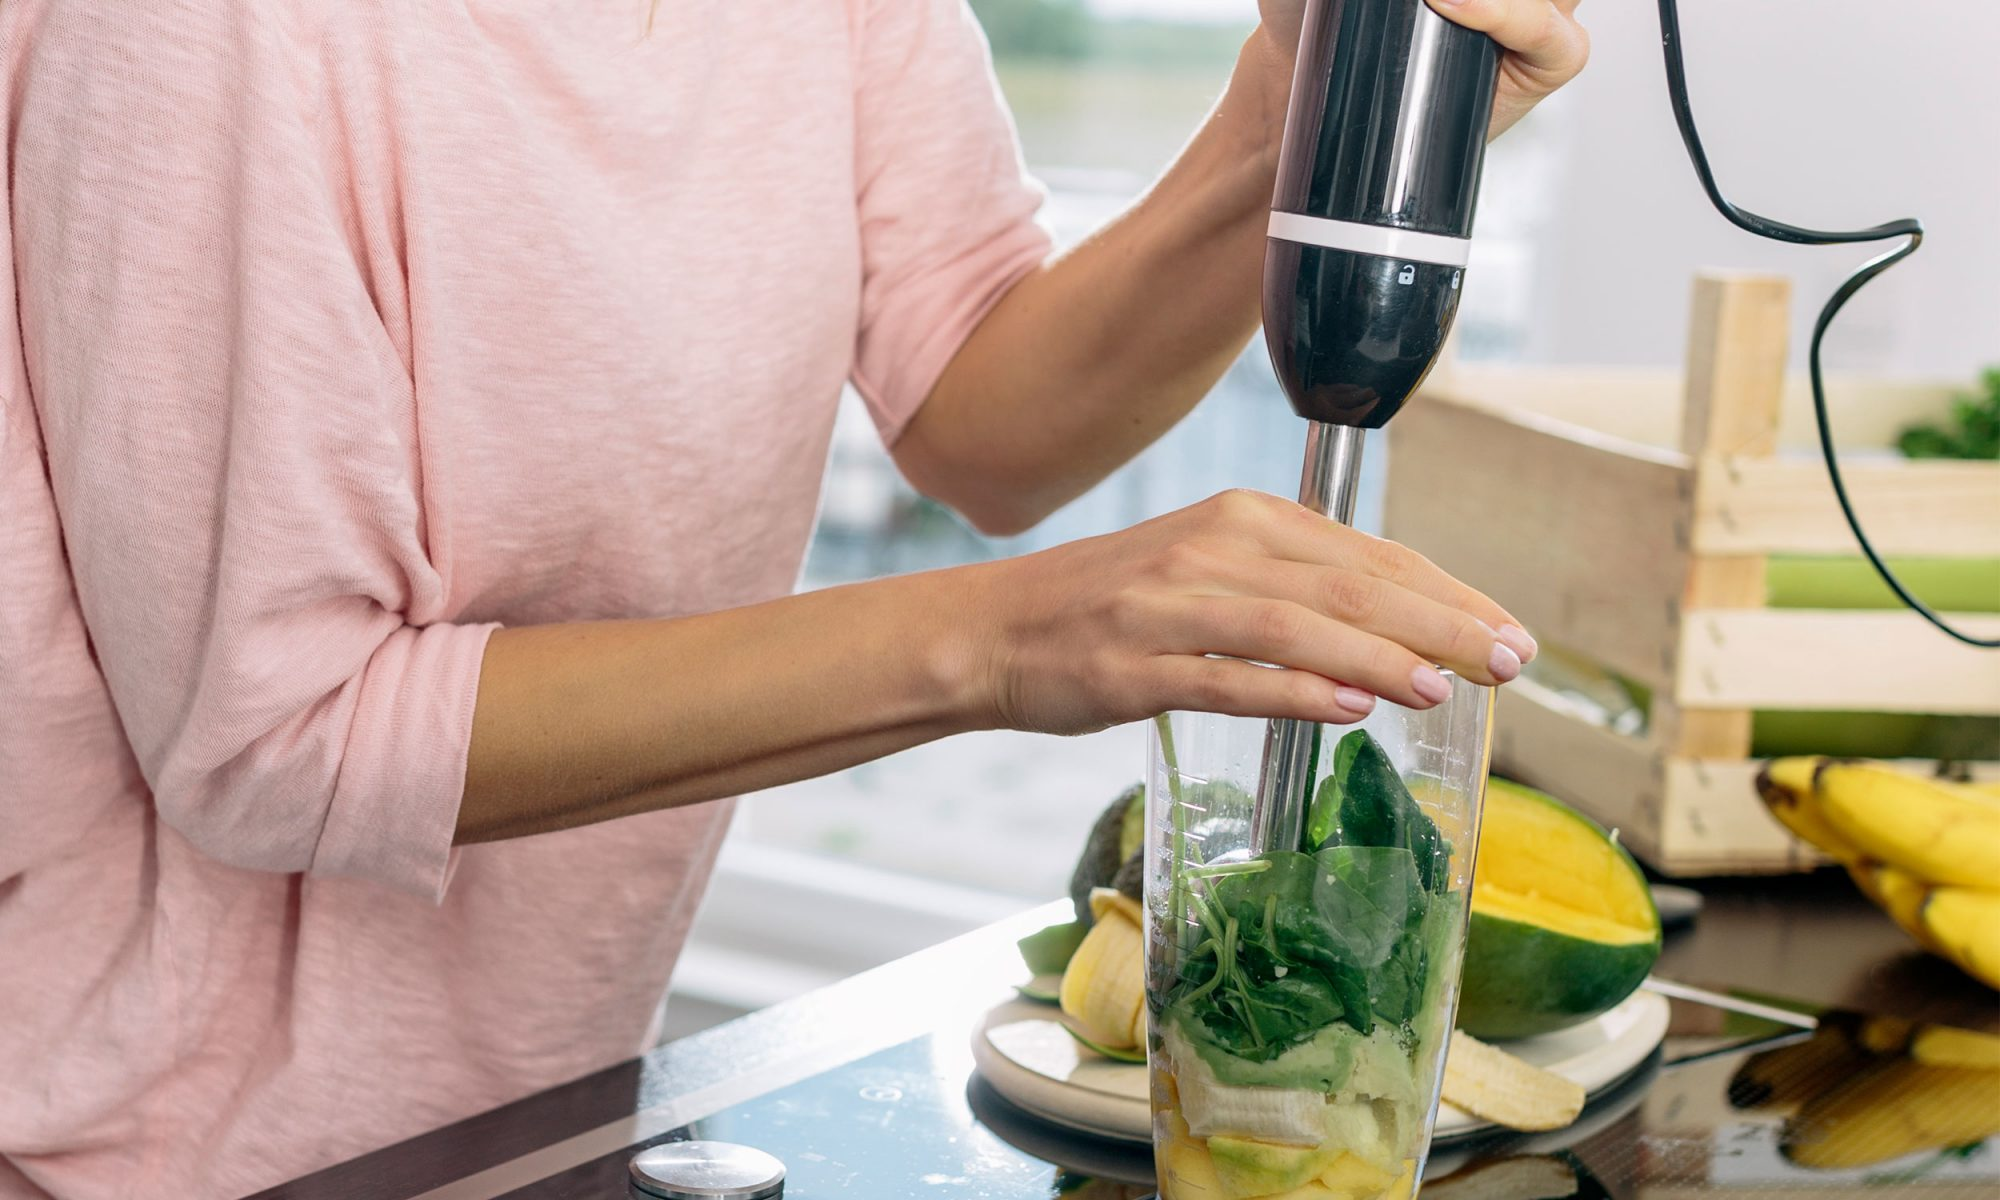 EC: Make Smoothies with an Immersion Blender and Wash Fewer Dishes